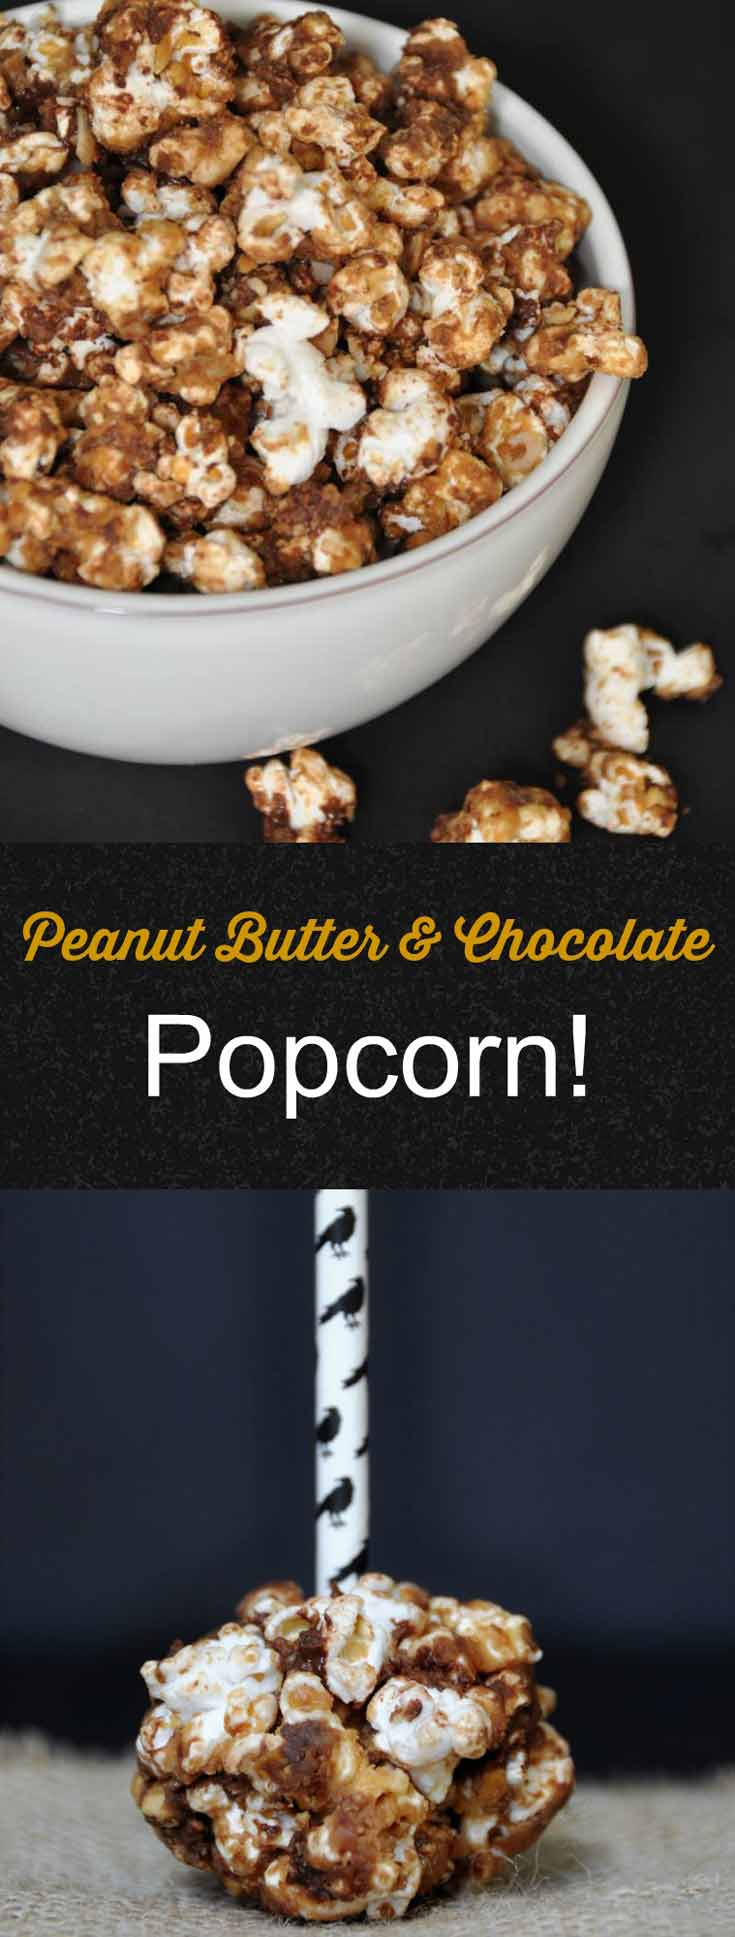 http://www.veganosity.com/peanut-butter-and-chocolate-popcorn/